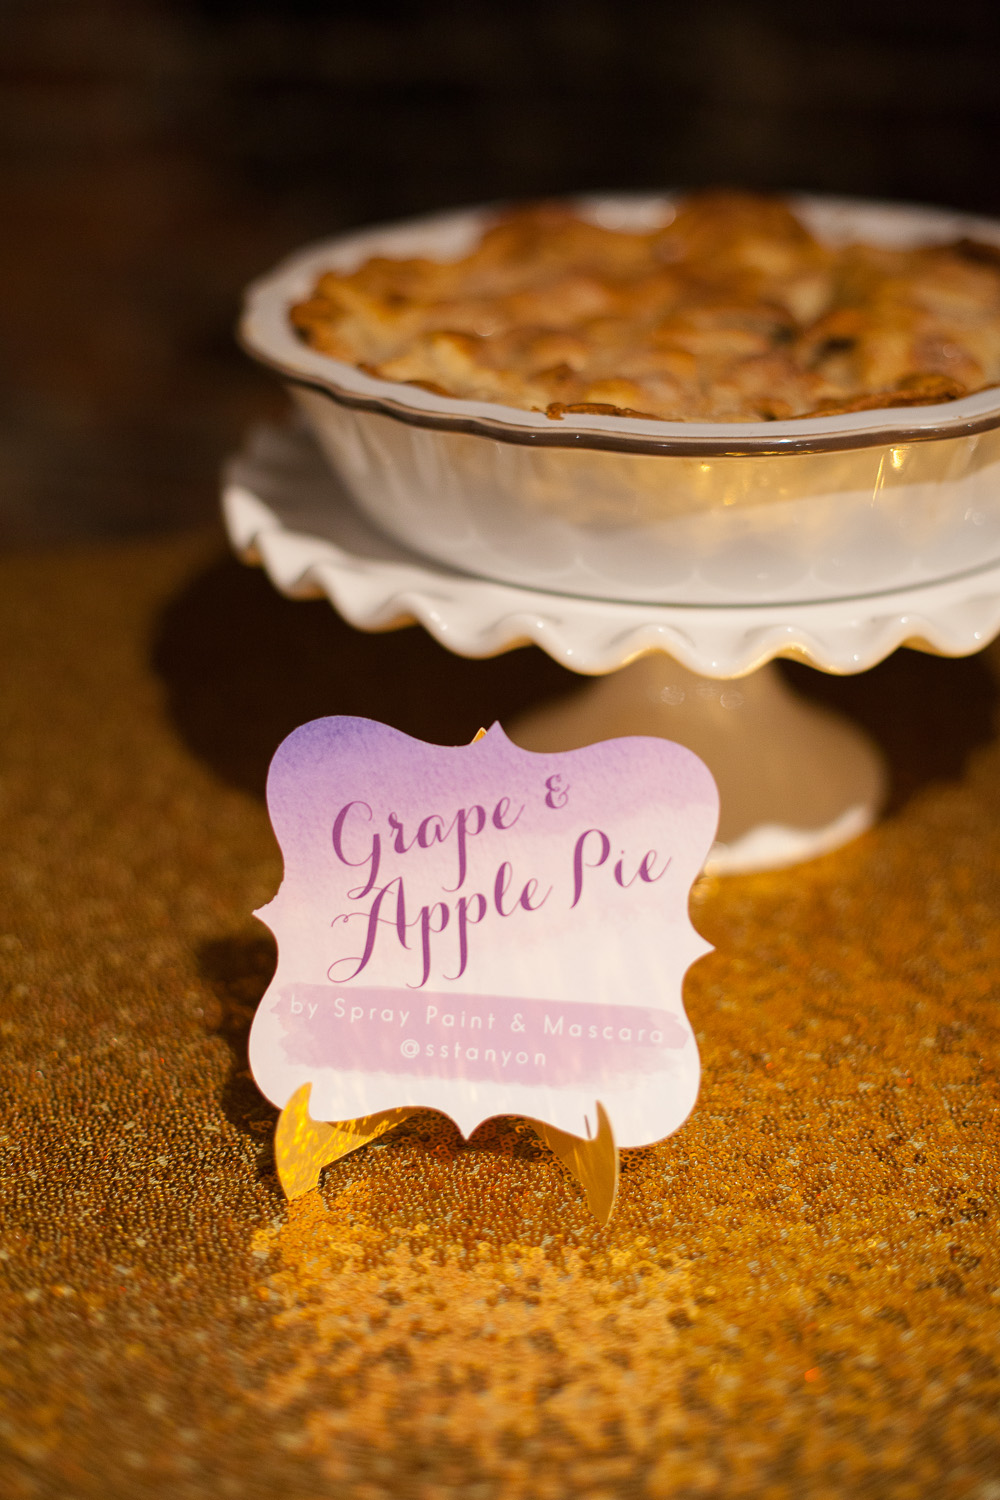 Apple Pie Name Card